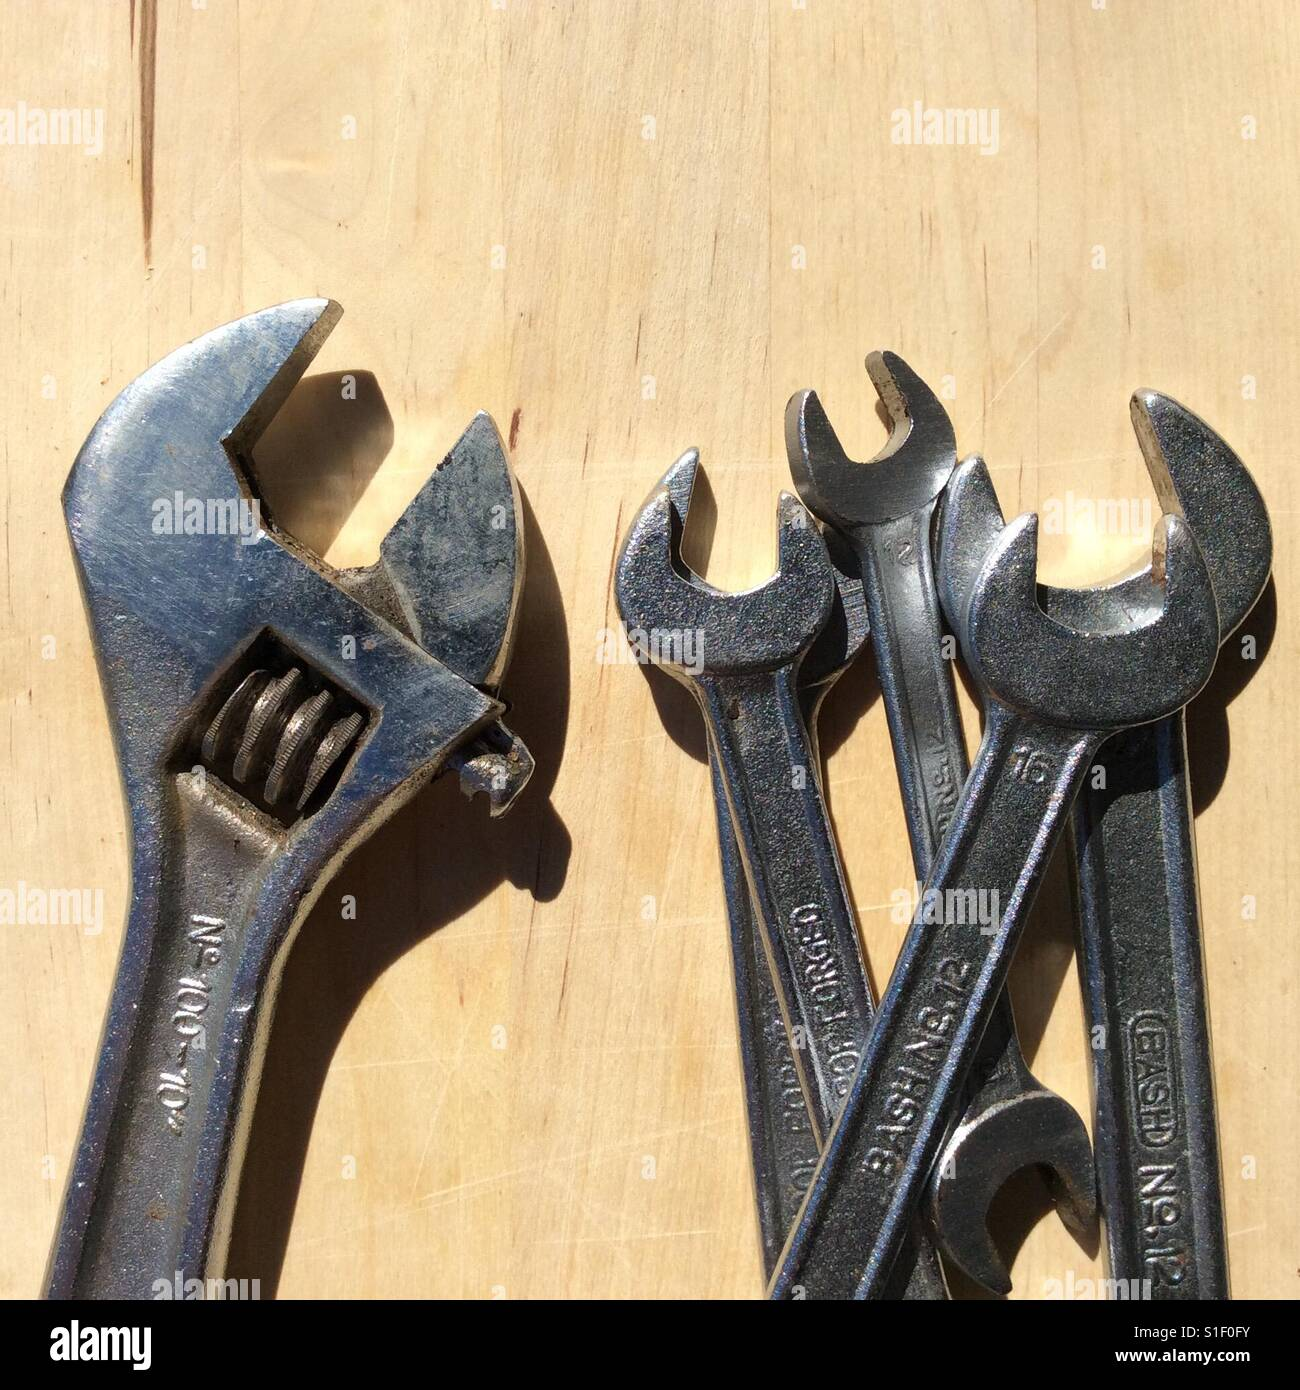 Adjustable wrench versus open end wrenches - Stock Image